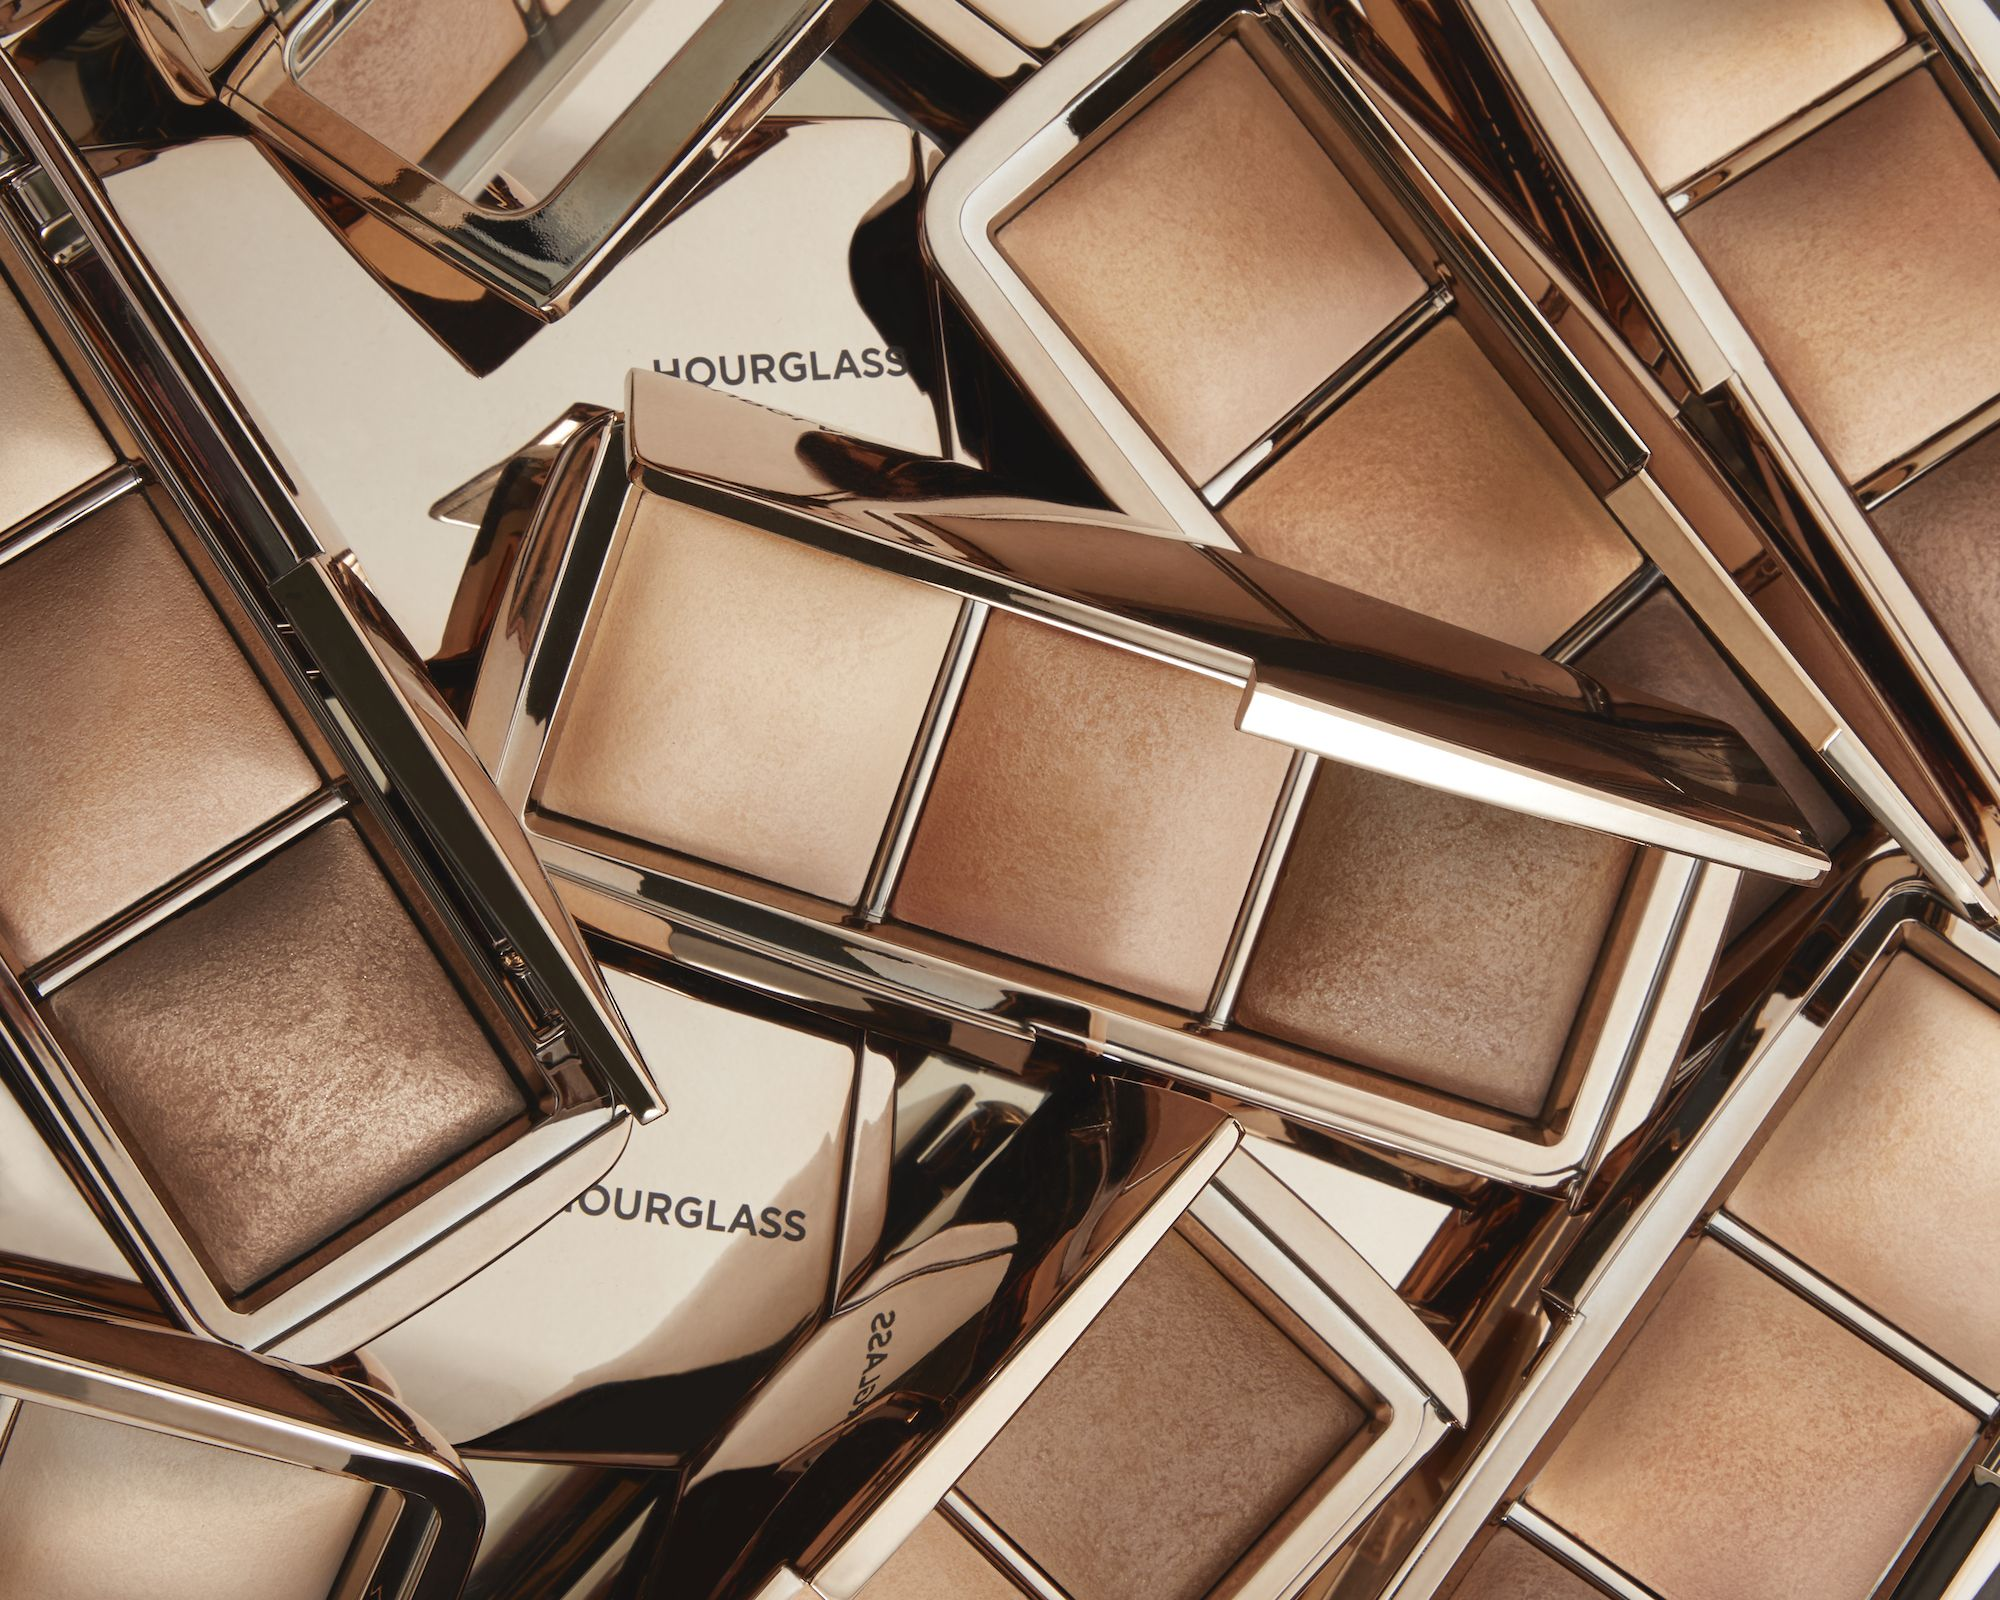 New In Beauty: Make-up And Skincare Products For February 2021